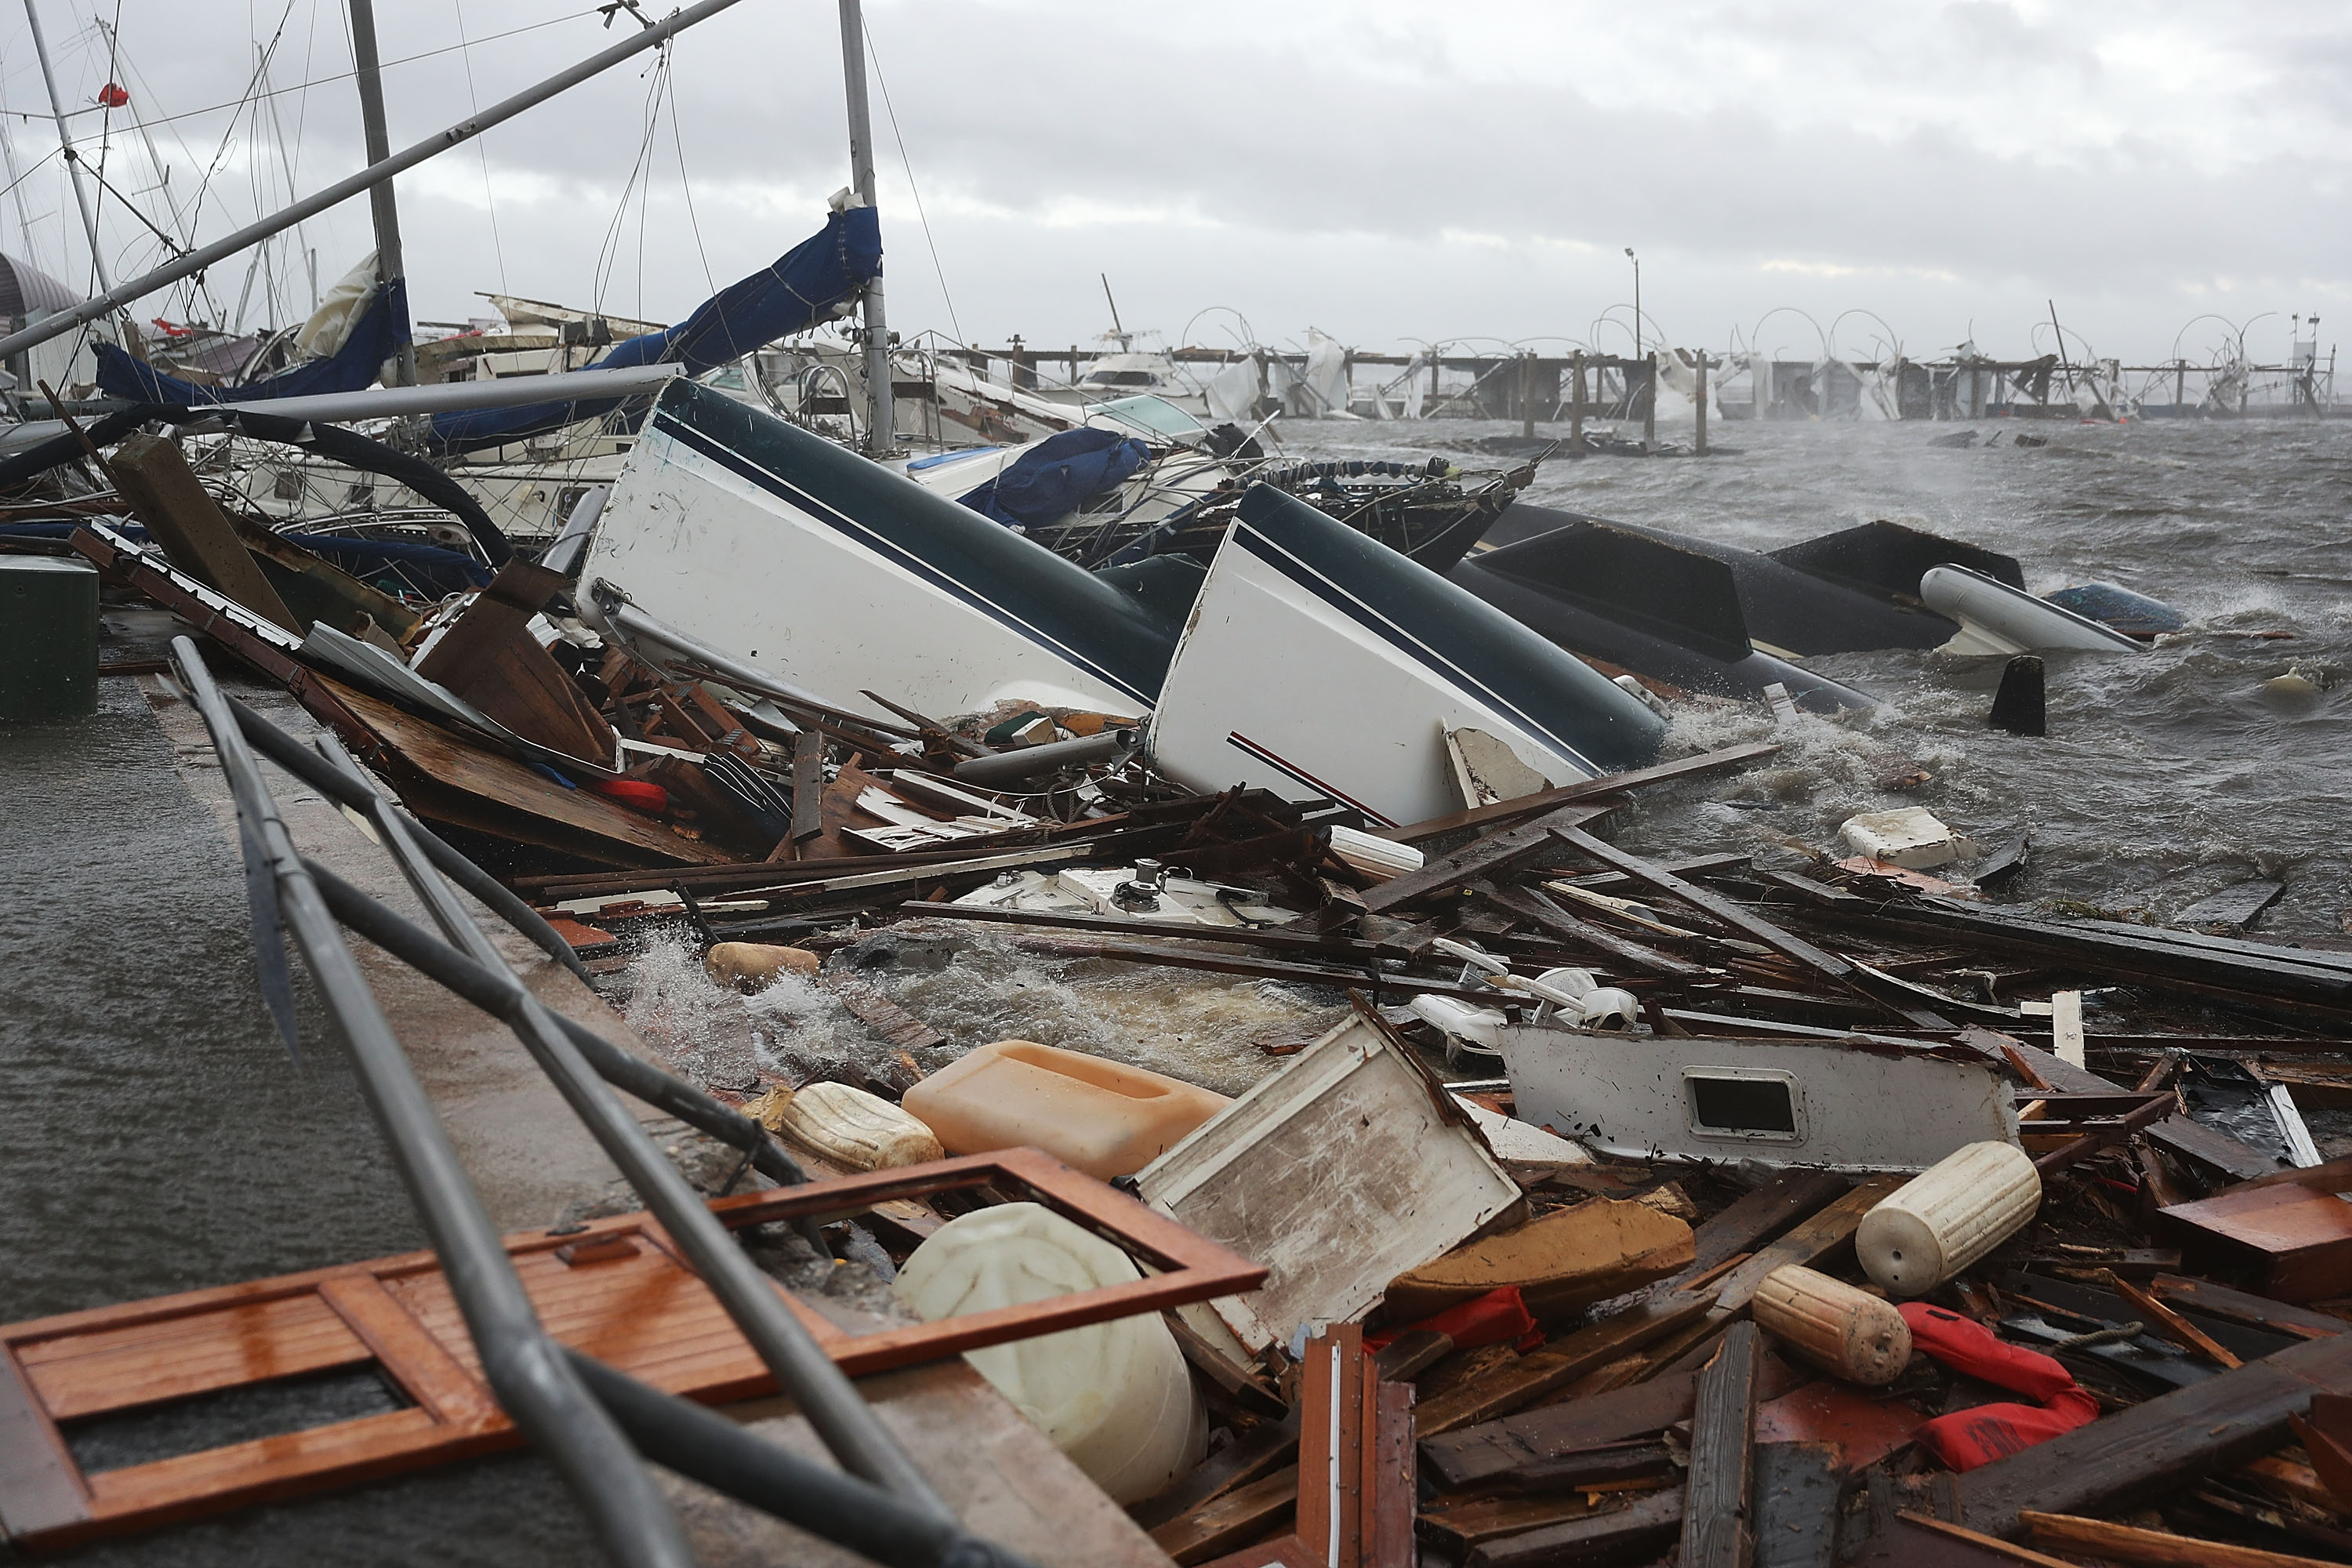 Boats that were docked are seen in a pile of rubble after hurricane Michael passed through the downtown area on October 10, 2018 in Panama City, Florida. The hurricane hit the Florida Panhandle as a category 4 storm.